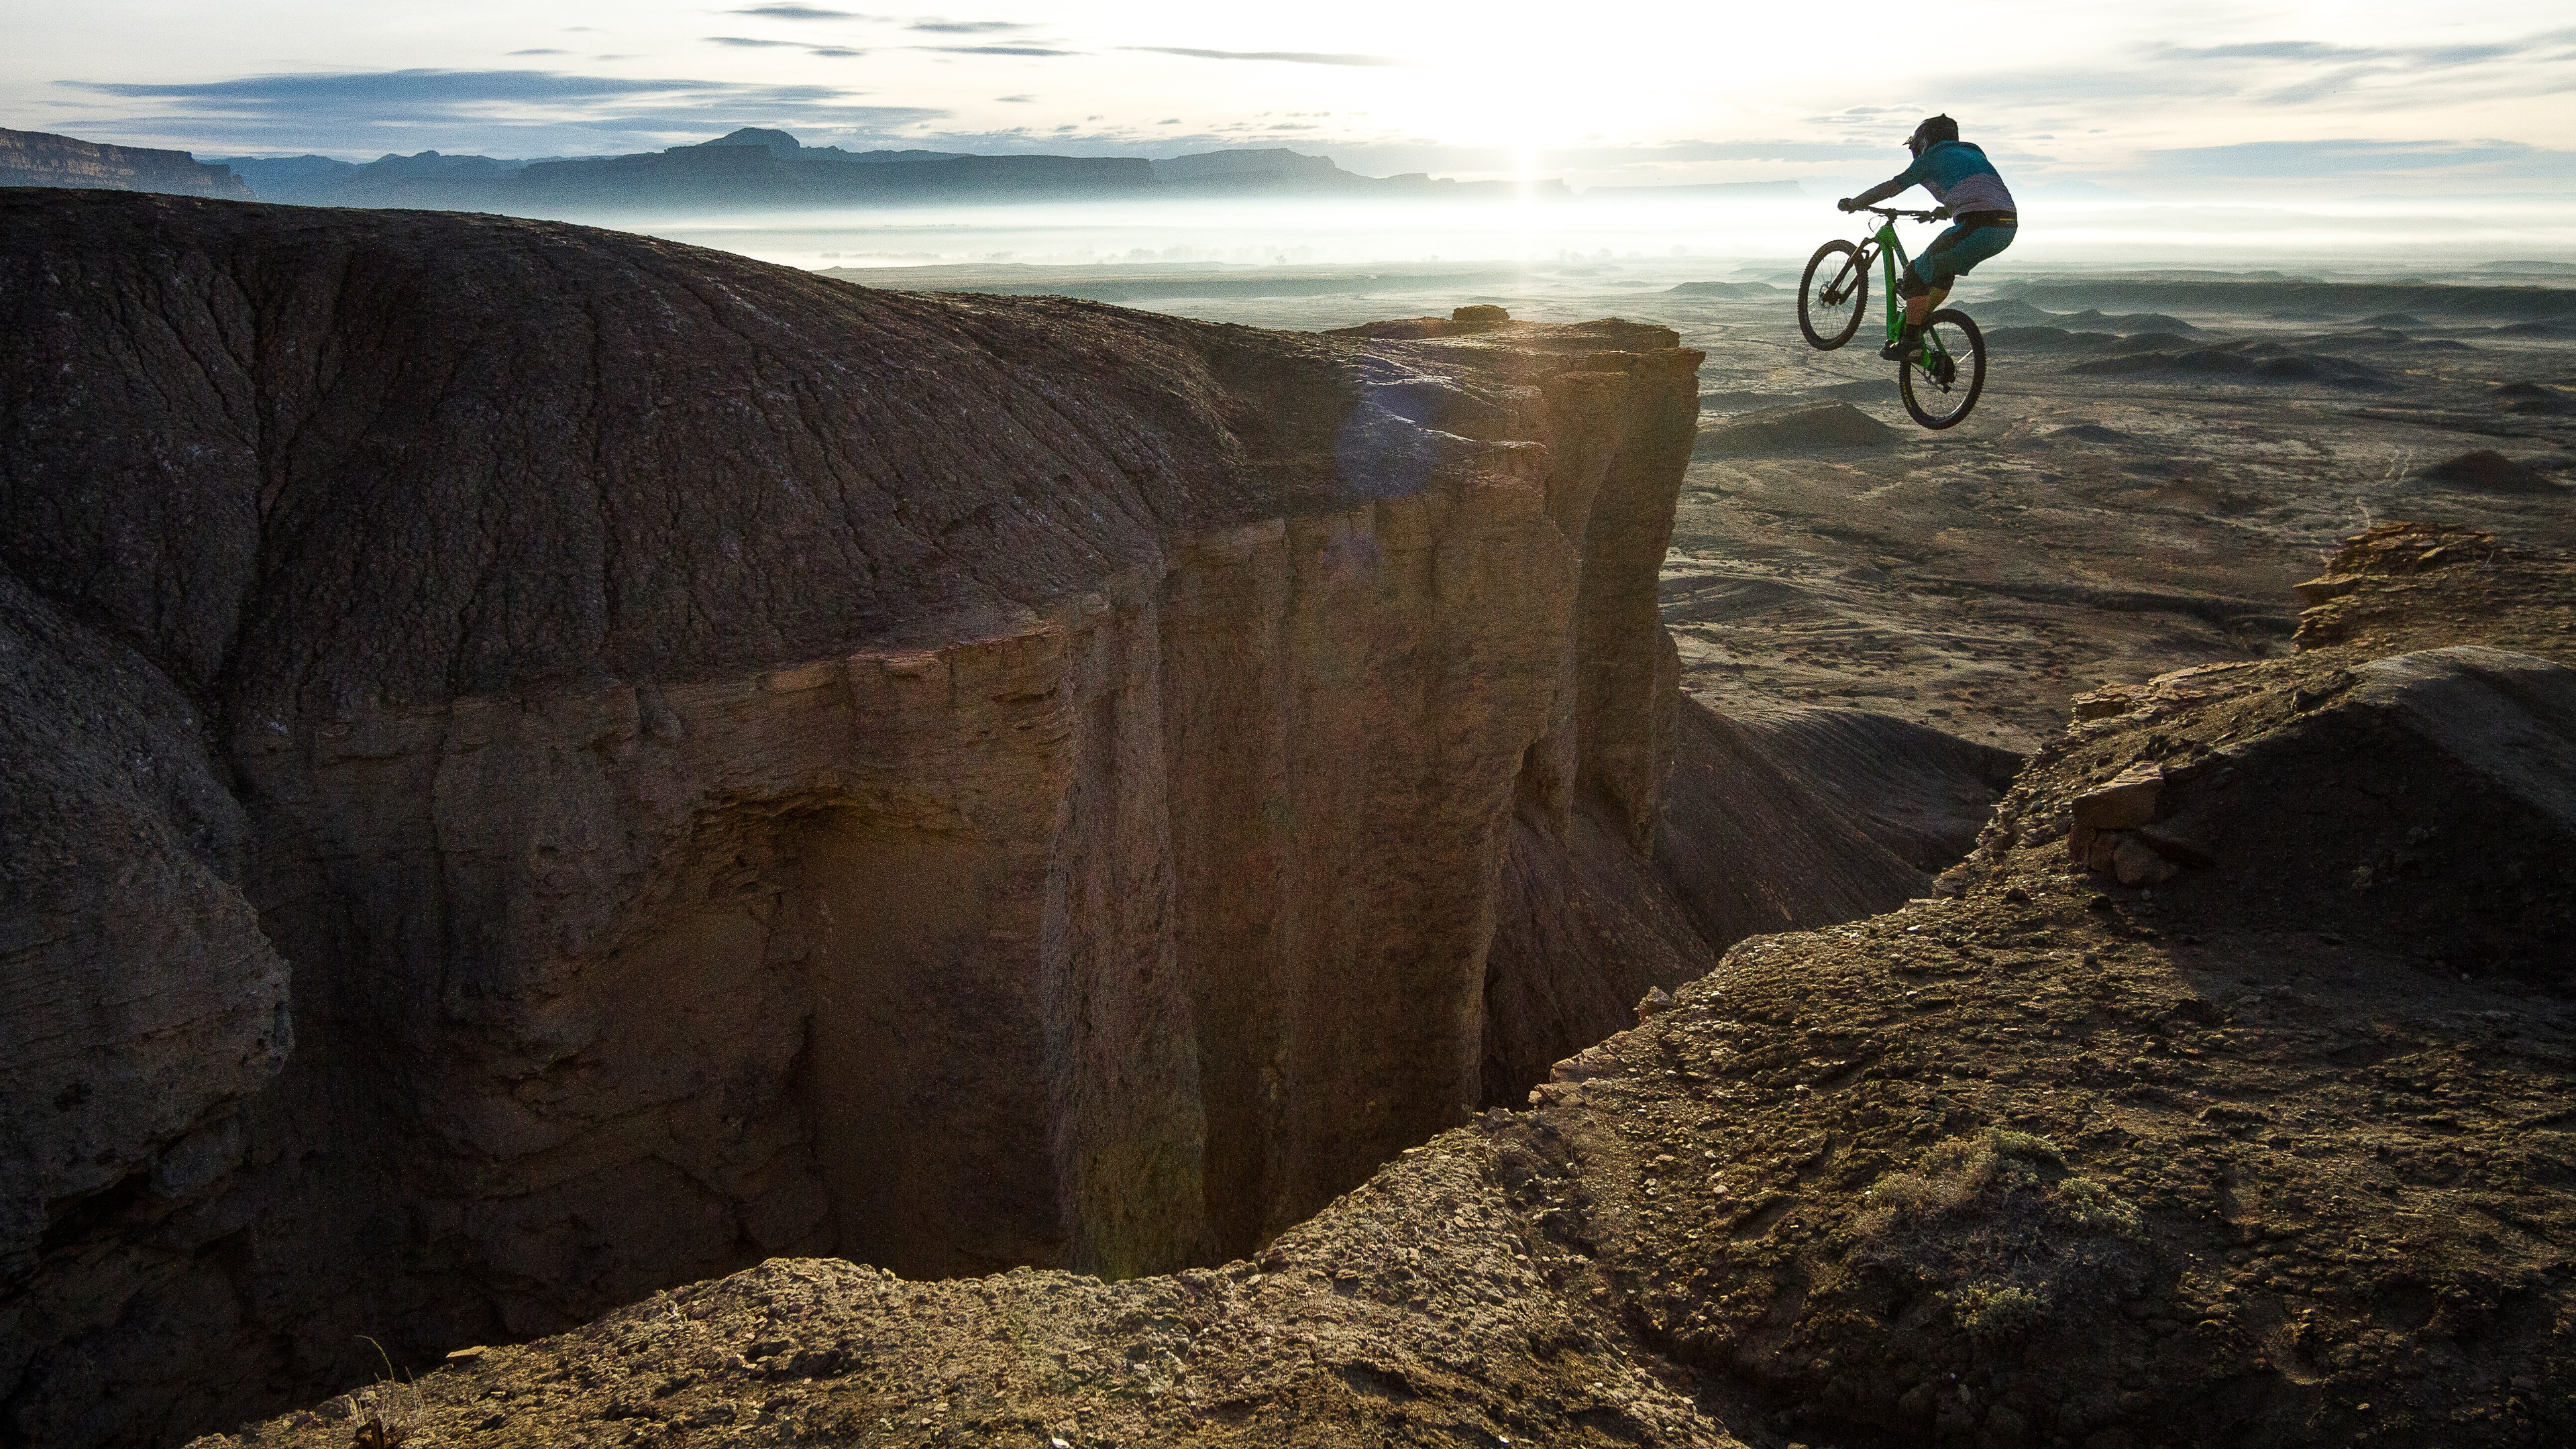 Mountain bicyclist flies over a canyon  in this promotional photograph taken near  Green River Wyoming